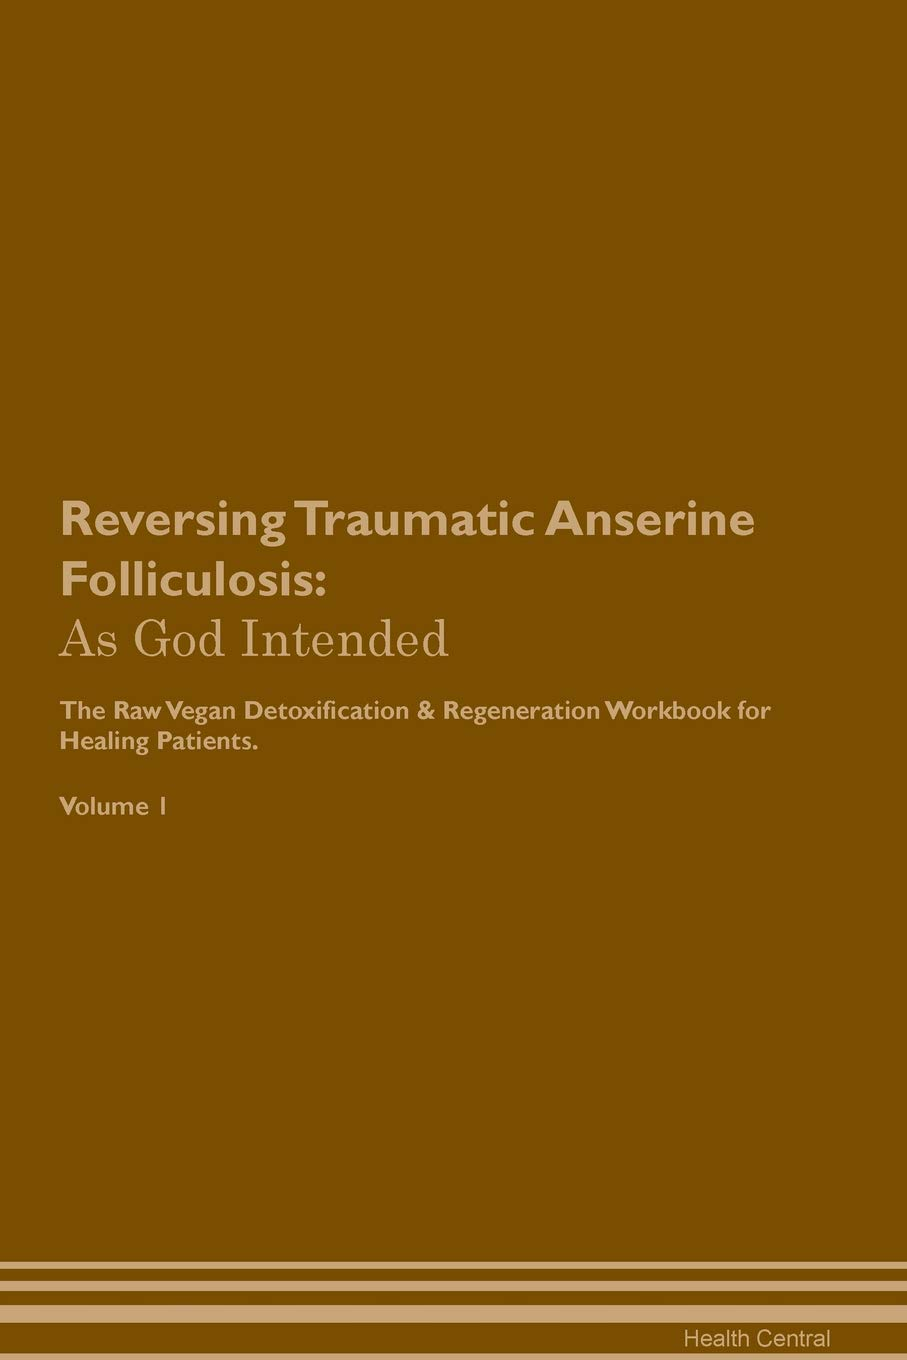 Reversing Traumatic Anserine Folliculosis: As God Intended